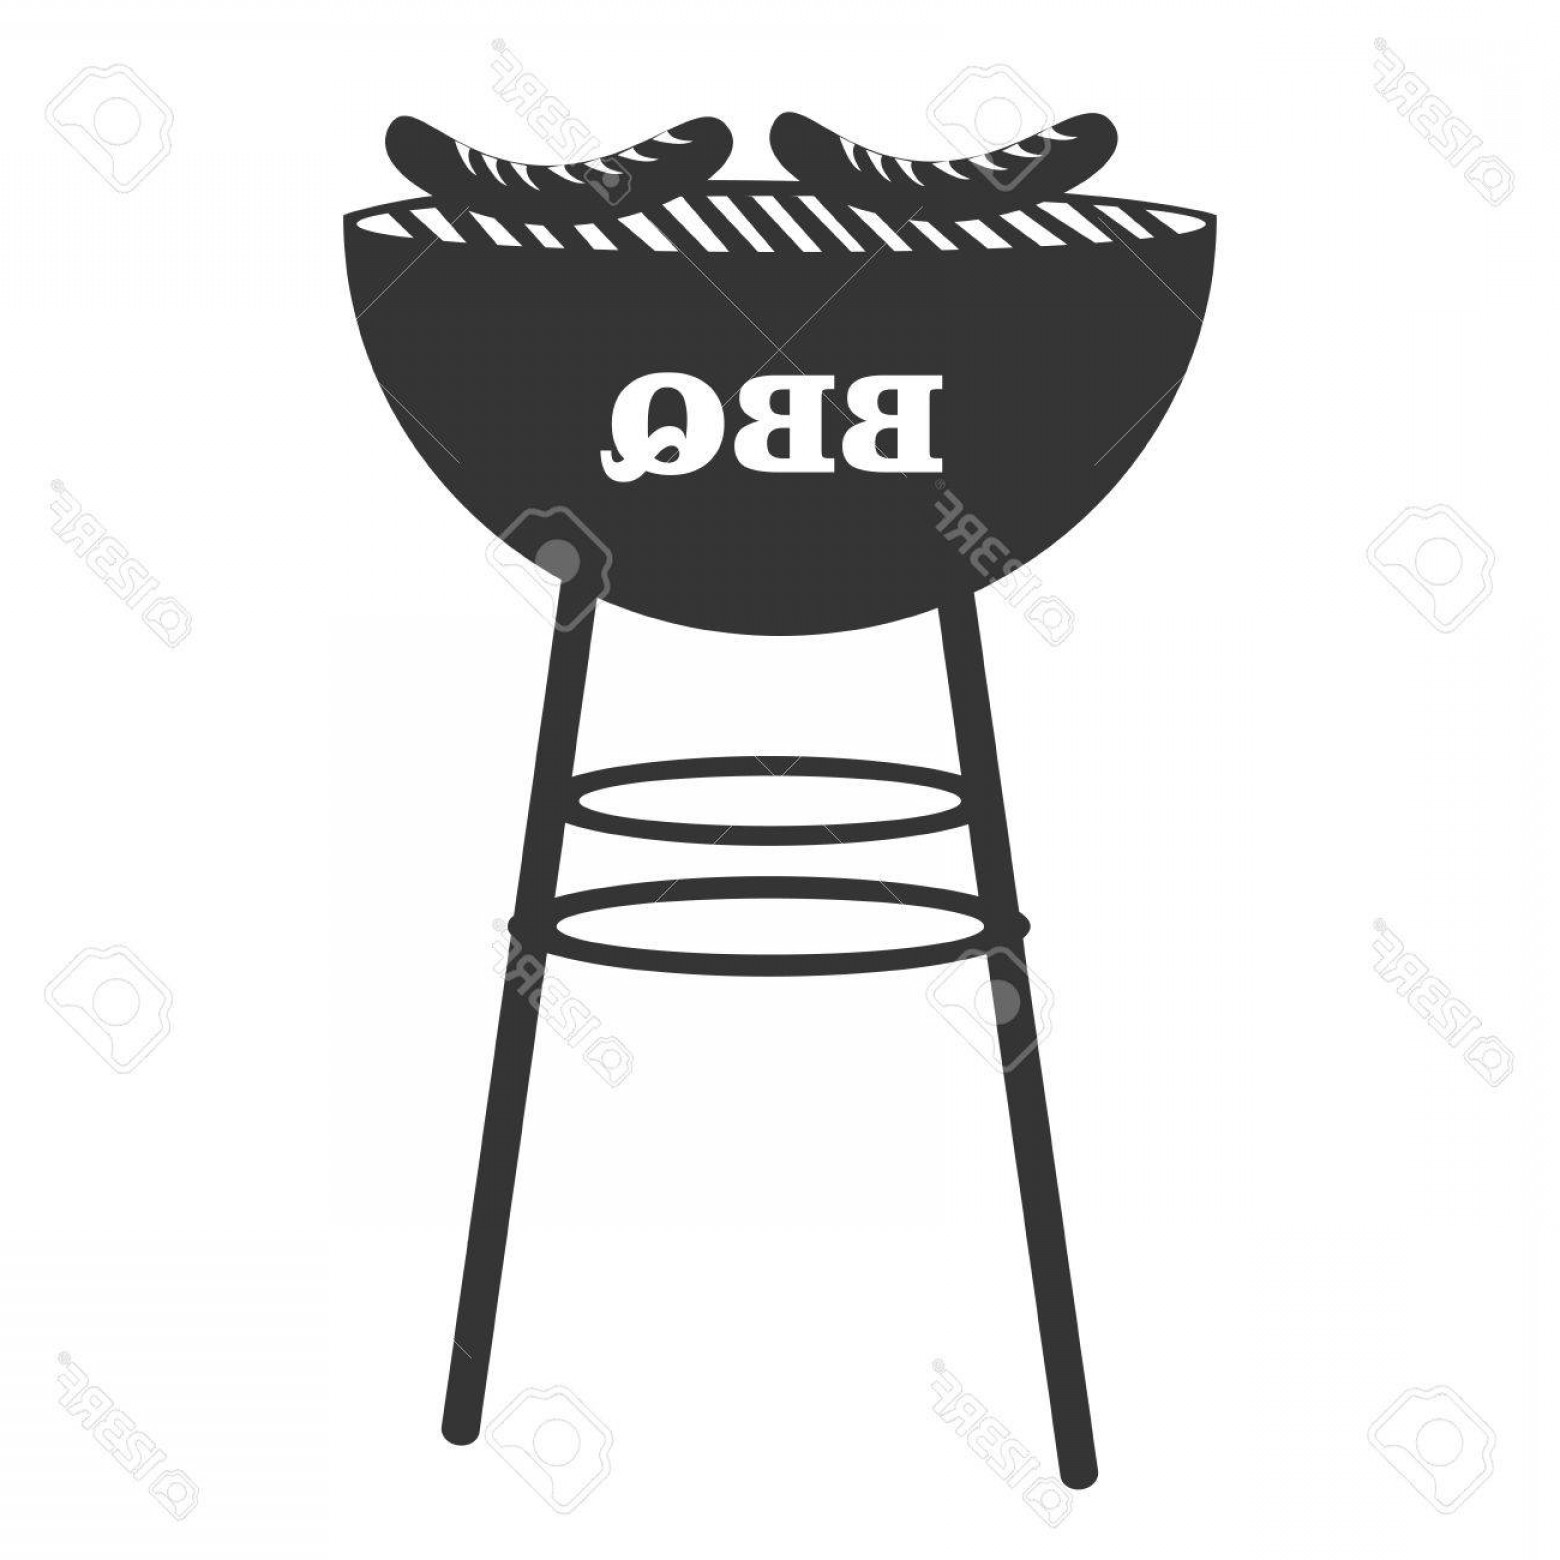 BBQ Grill Vector Black And White: Photostock Vector Bbq Grill With Sausages Icon In Black And White Vector Illustration Graphic Design